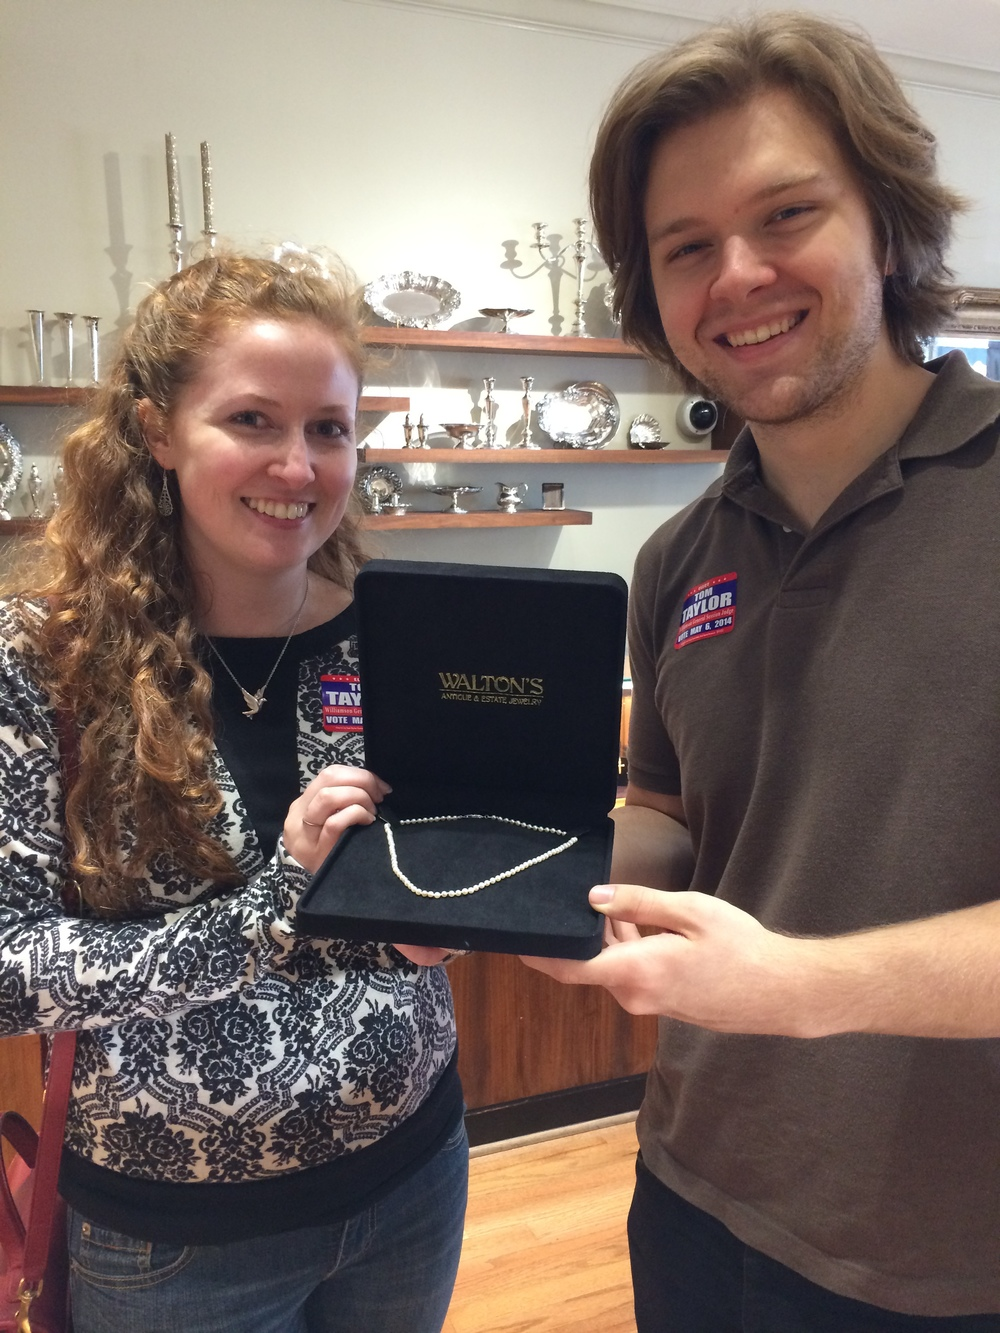 The Walton's Golden Egg was found on April 16th, 2014 at 4:15! Congratulations to our lucky hunters!